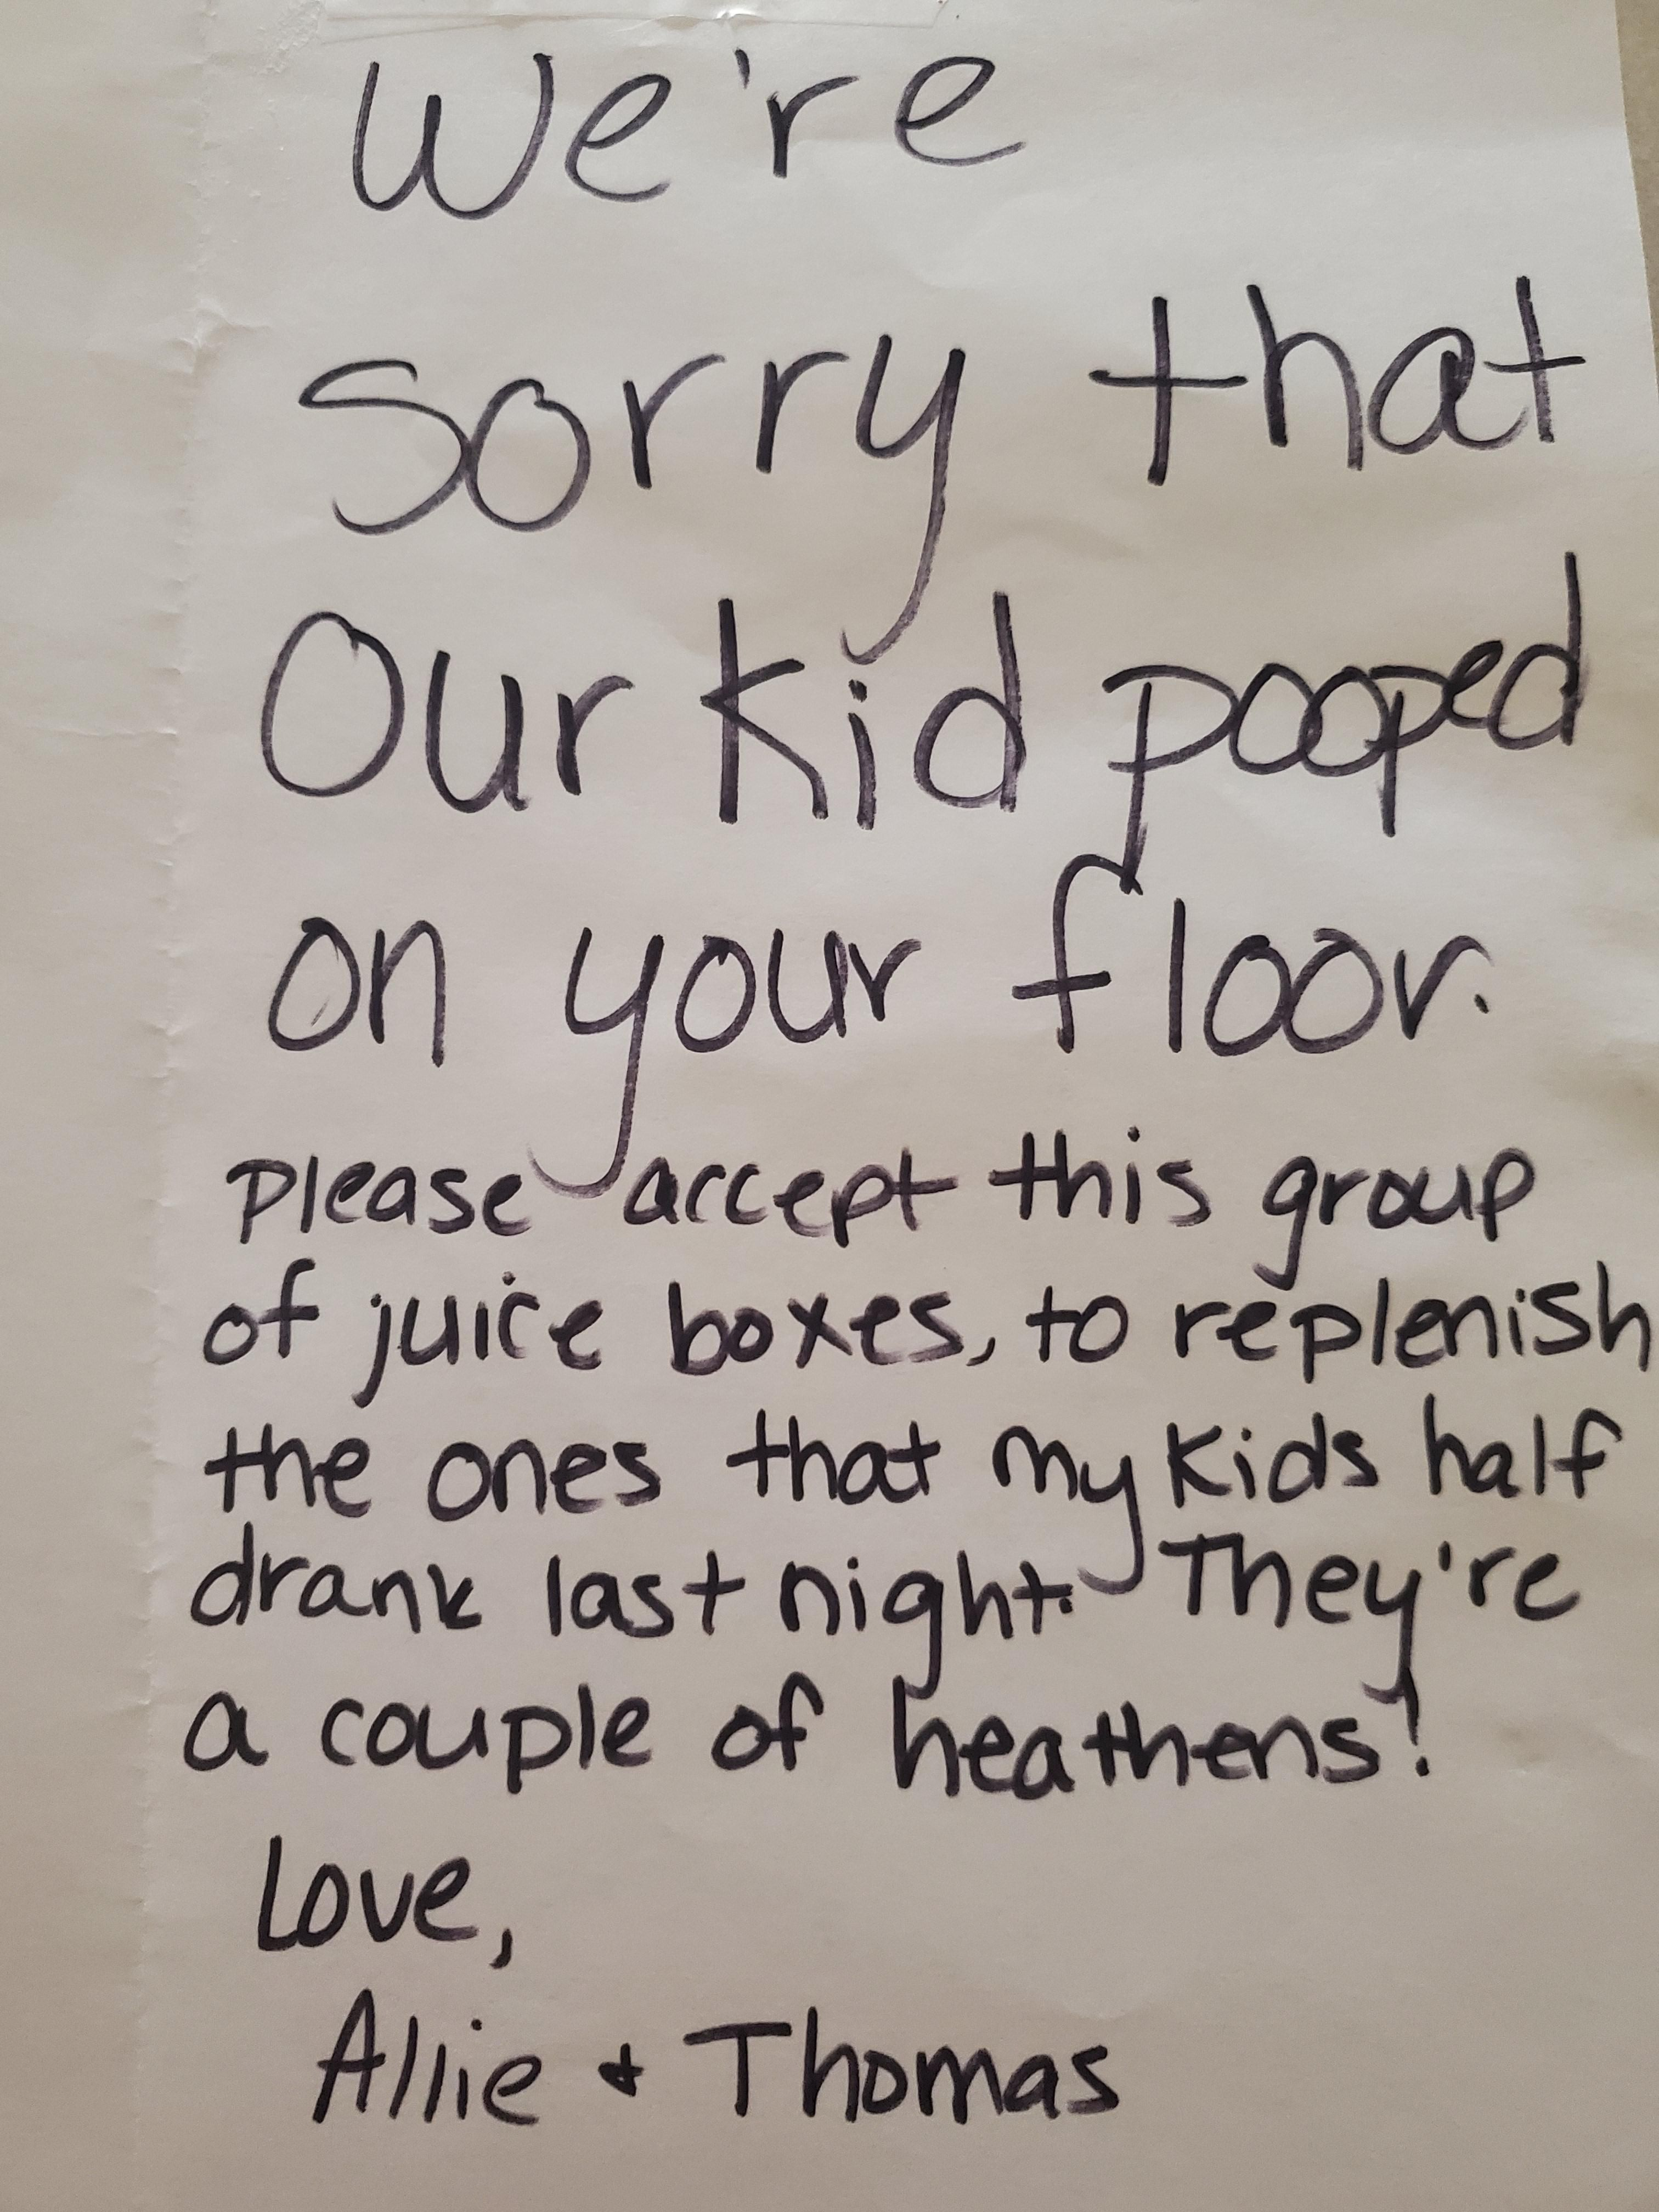 Had my brother and SIL over for dinner, this letter we got the next morning on our doorstep sums up children perfectly